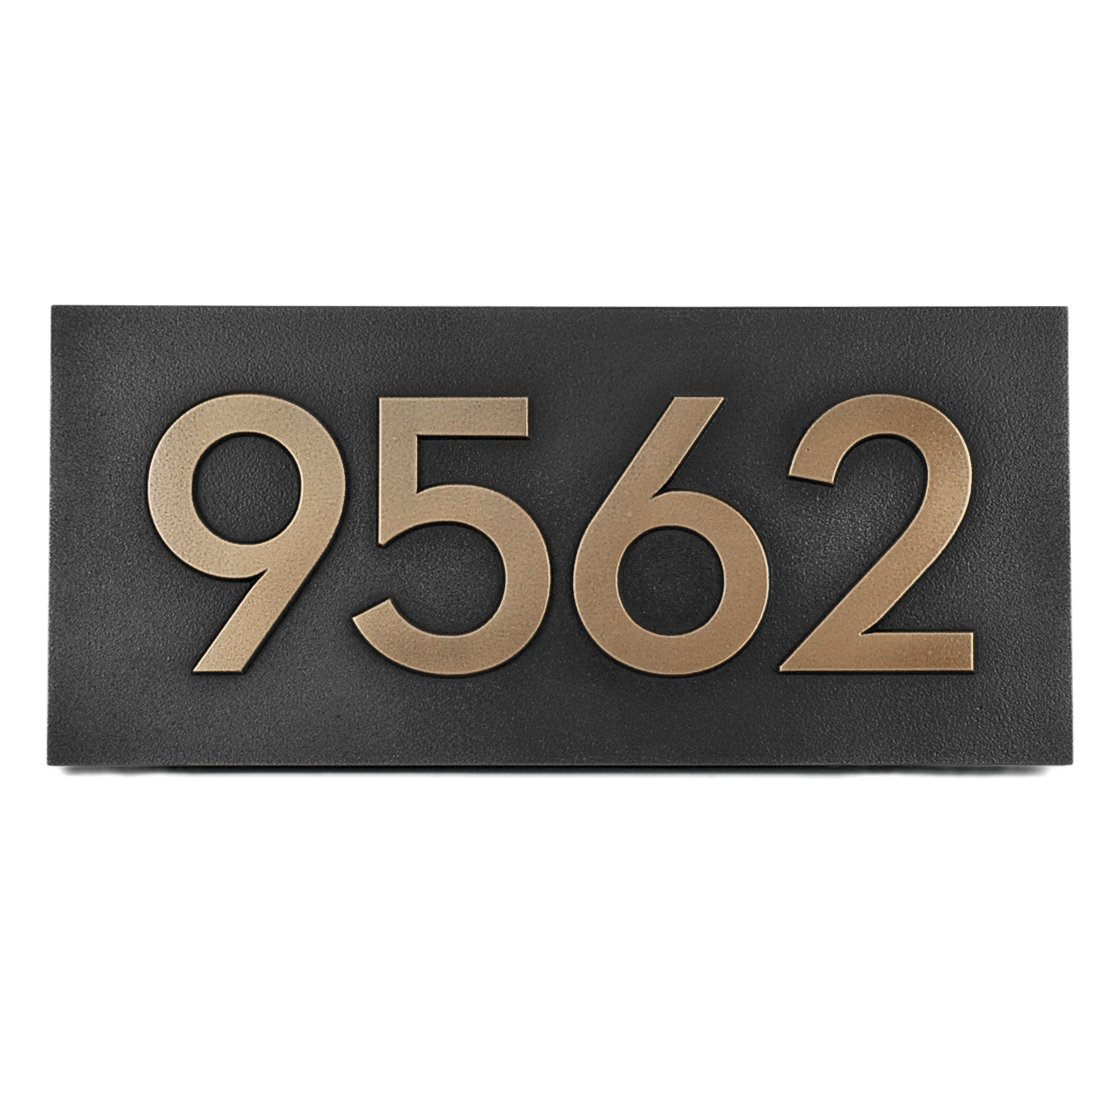 Modern Font Handcrafted Address Plaque - For Home or Business 15.5 x 7 Raised Lettering - Sign is Metal Coated in Bronze by Atlas Signs and Plaques